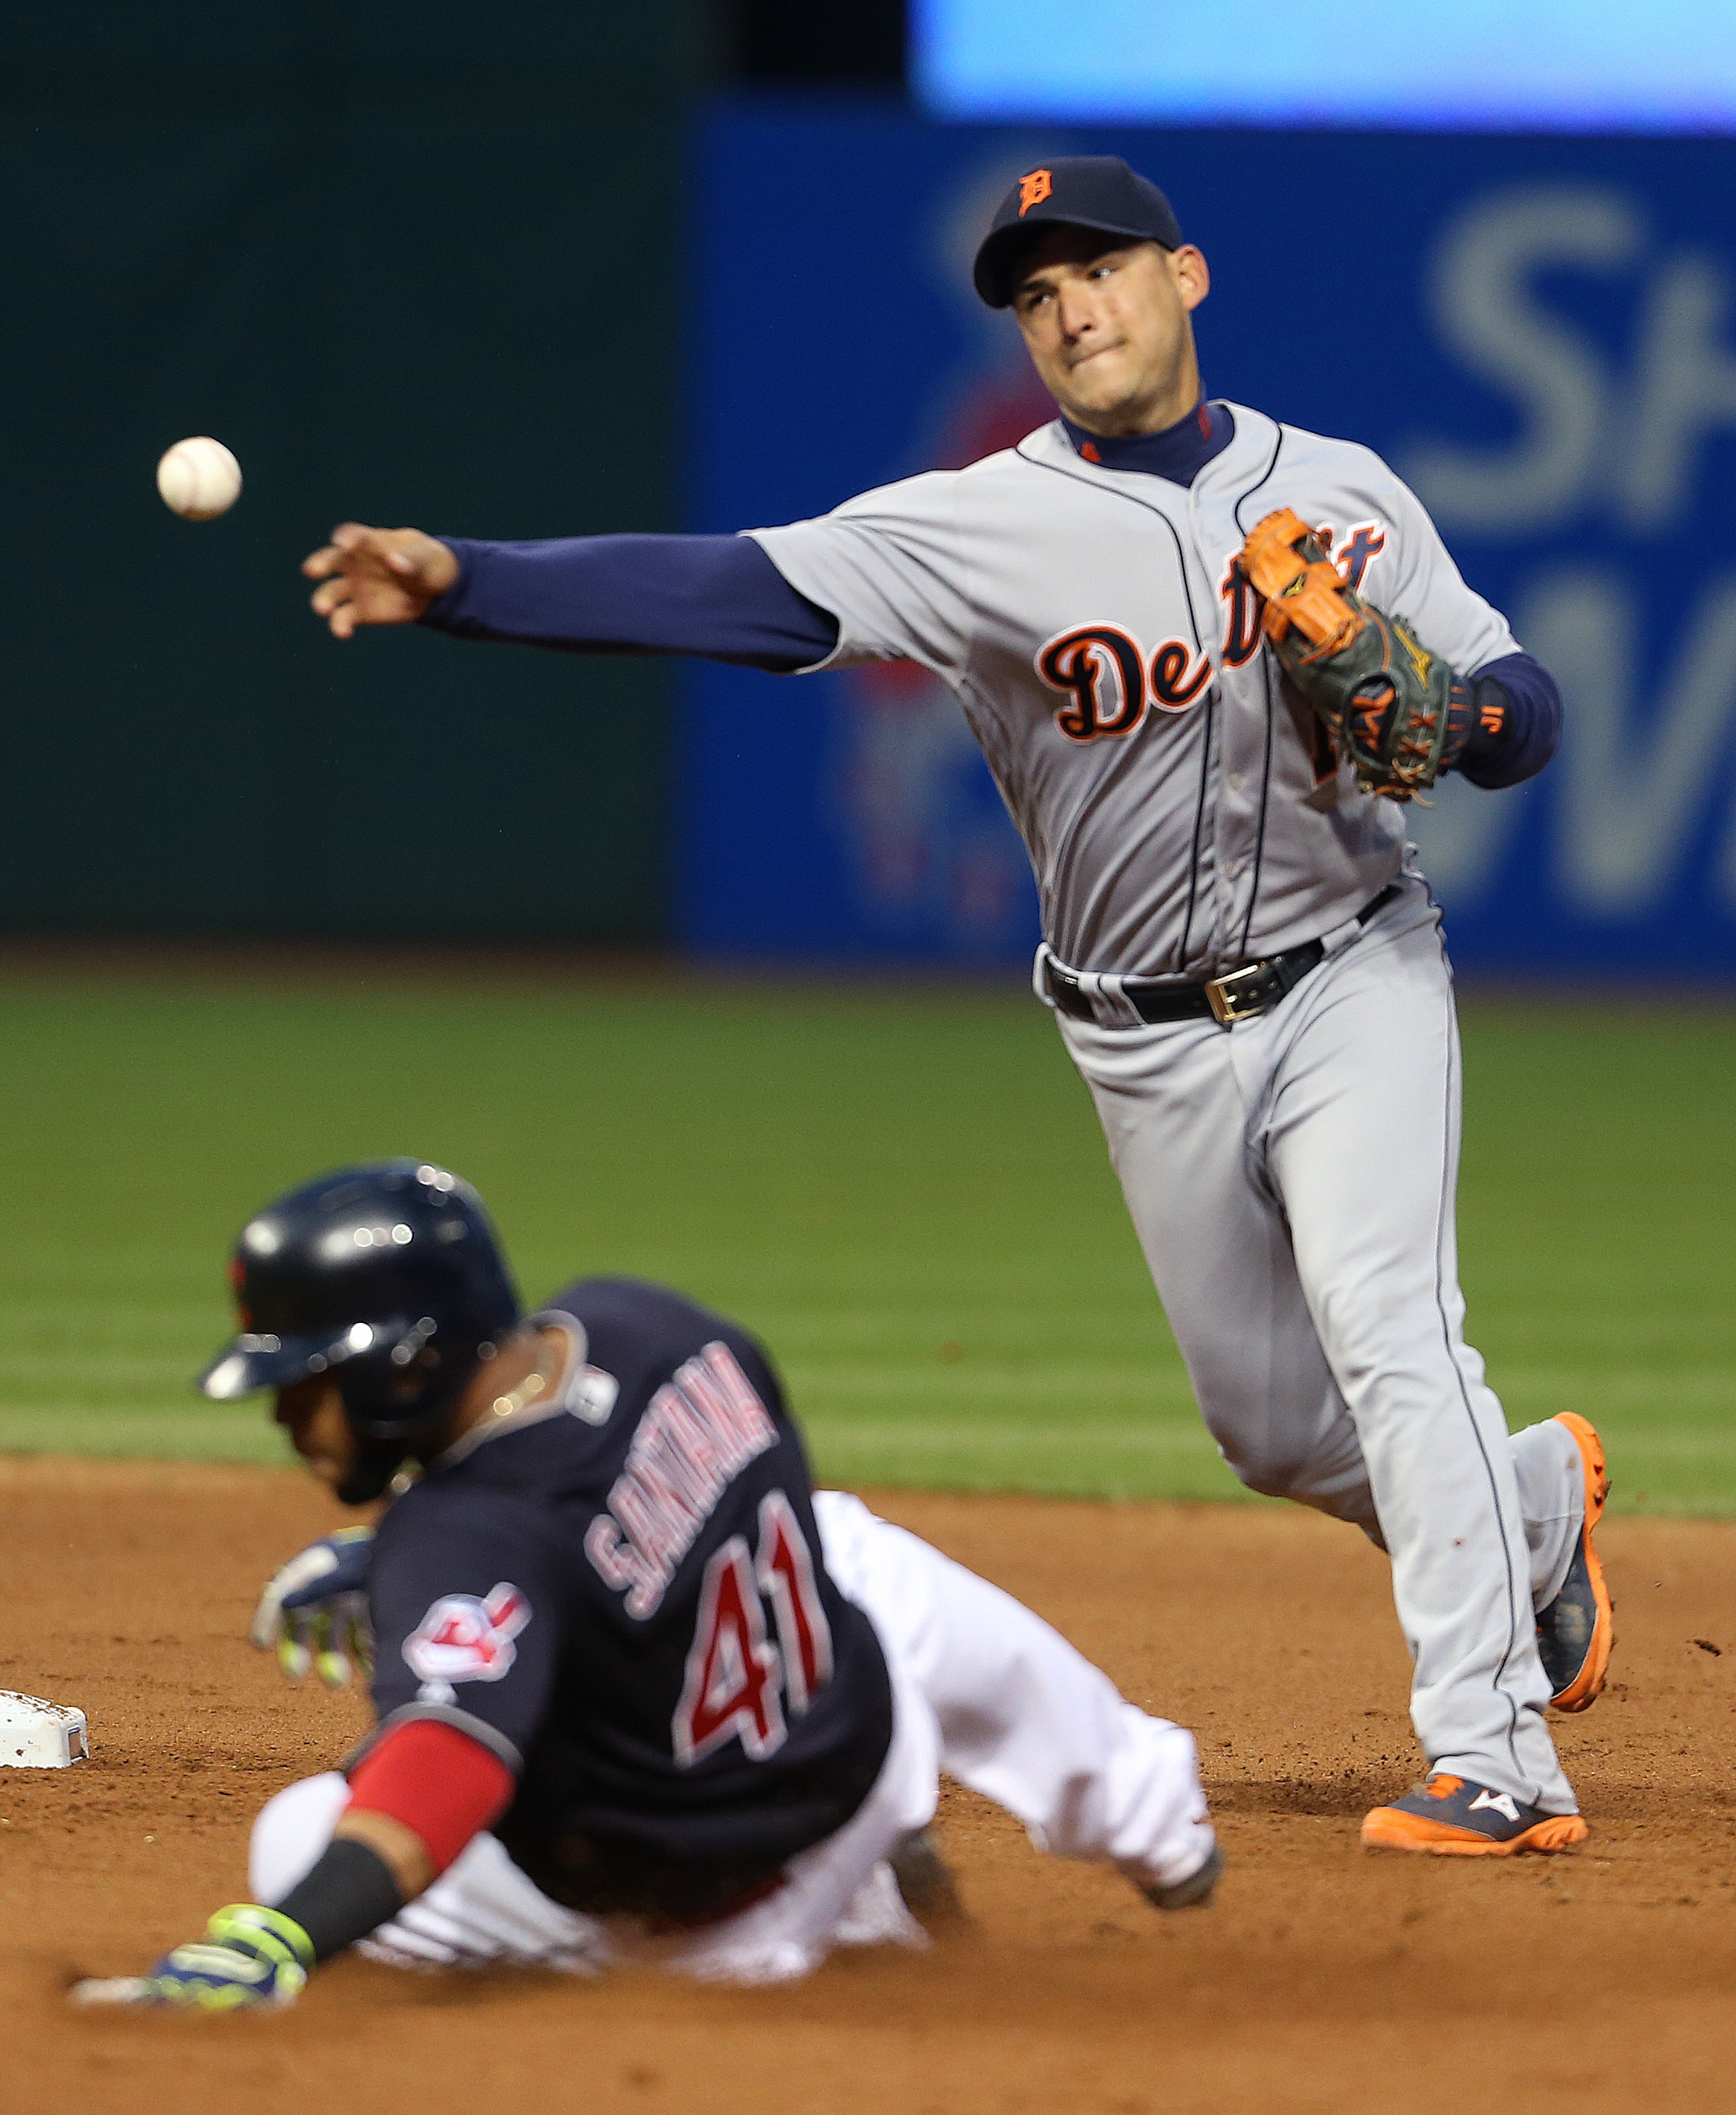 Detroit Tigers' Jose Iglesias (1) turns a double play over Cleveland Indians' Carlos Santana (41) and throws out Jason Kipnis at first base during the eighth inning of a baseball game, Wednesday, May 4, 2016, in Cleveland. The Indians won 4-0. (AP Photo/R